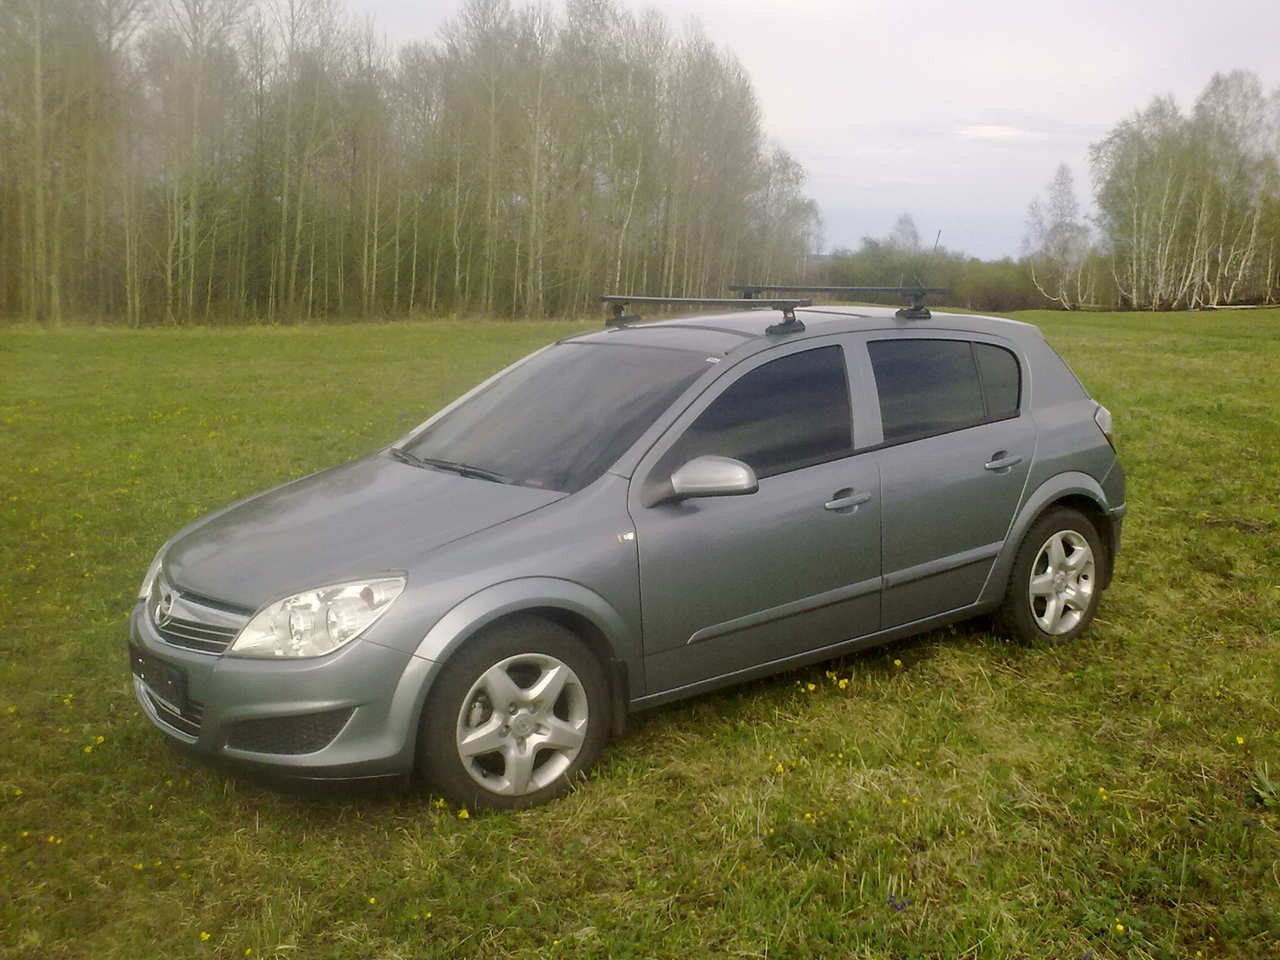 used 2008 opel astra photos 1598cc gasoline ff manual for sale. Black Bedroom Furniture Sets. Home Design Ideas